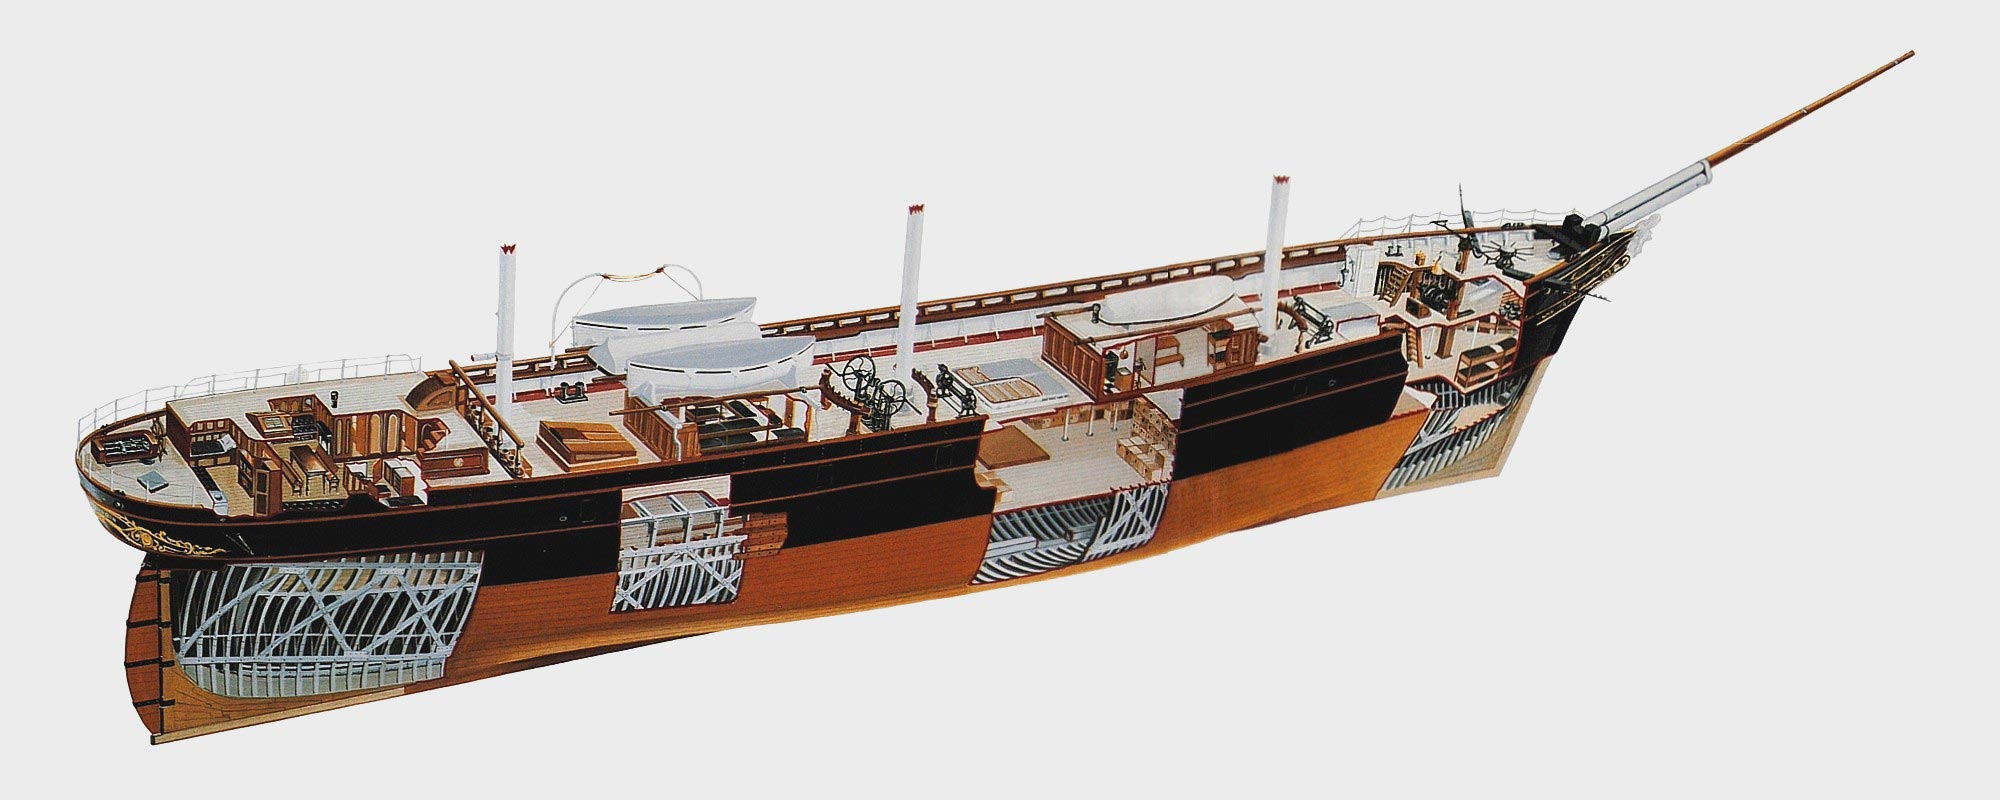 Cutty Sark clipper ship cutaway